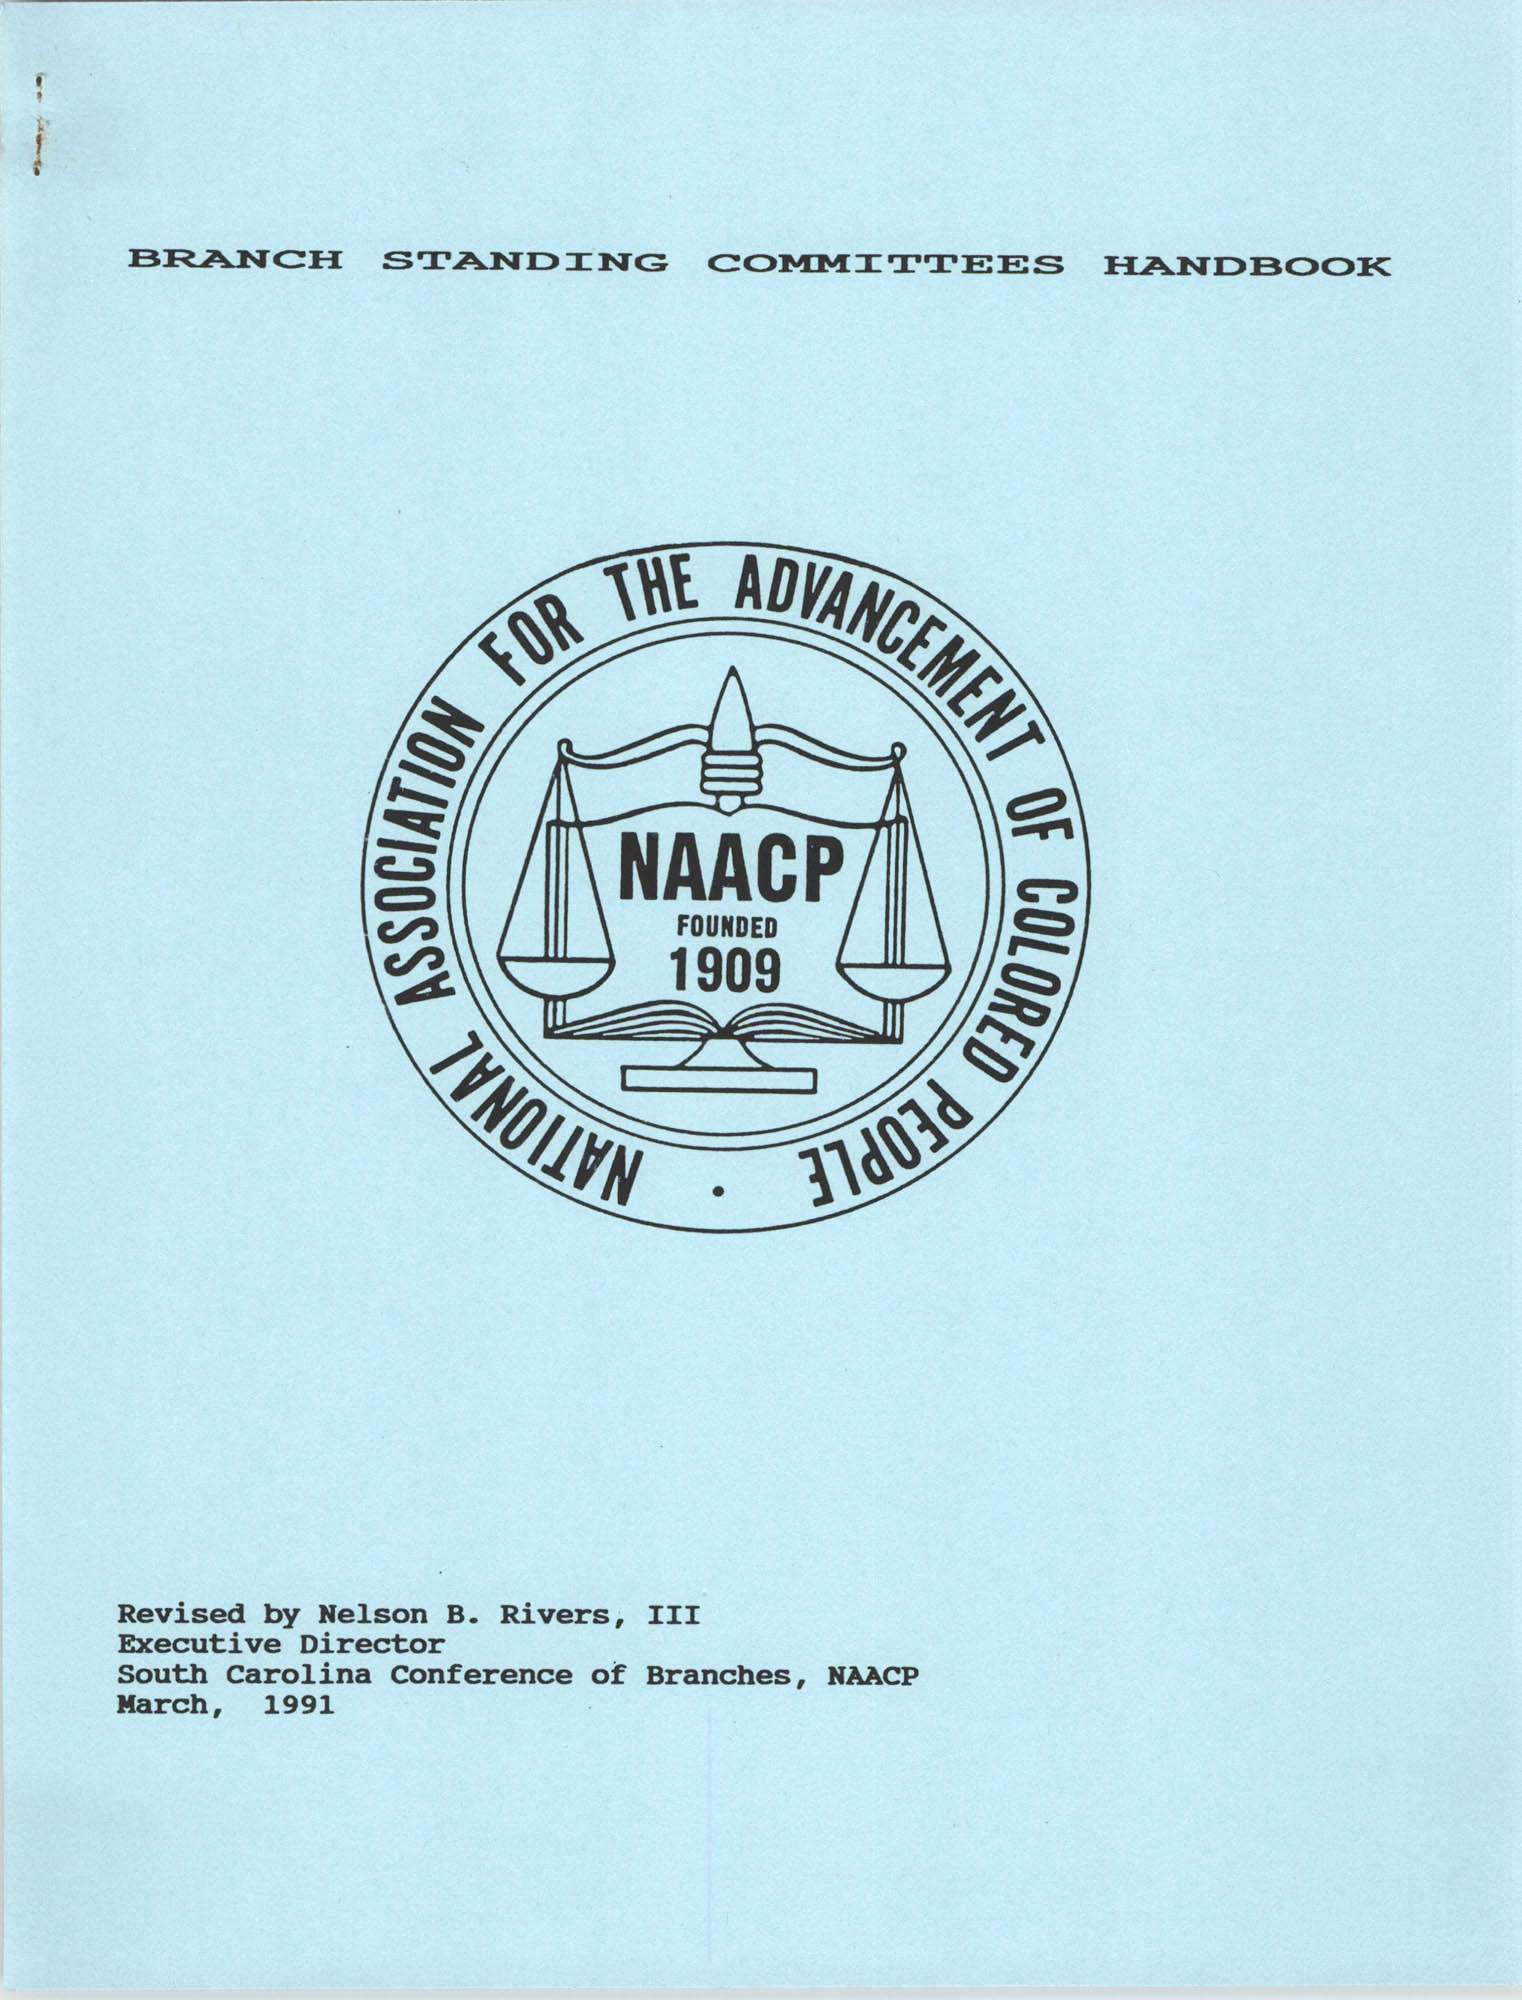 Branch Standing Committees Handbook for the South Carolina Conference of Branches for the NAACP